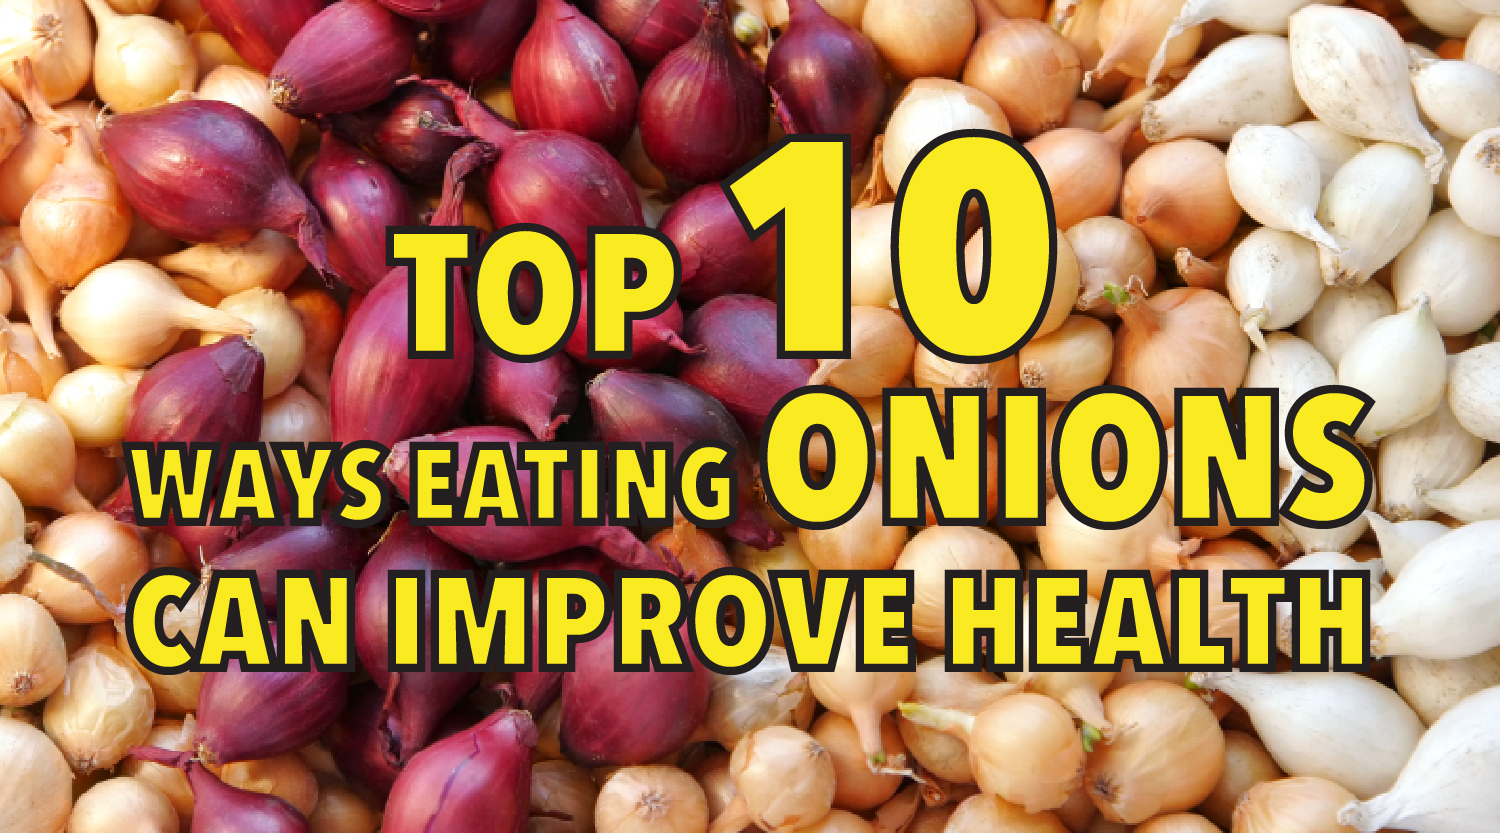 Top 10 ways eating onions can improve health-01